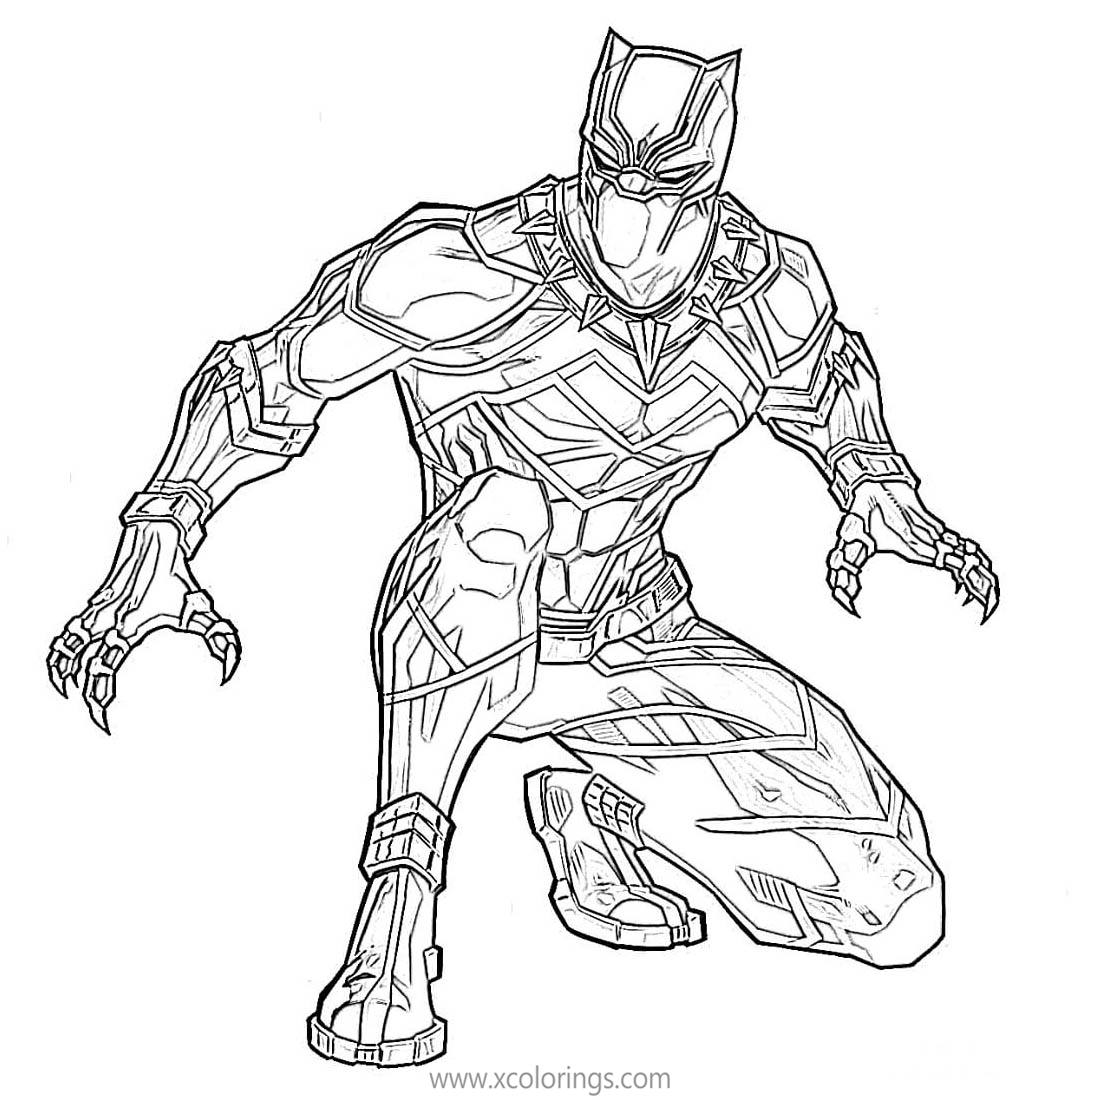 The Avengers Black Panther Coloring Pages Xcolorings Com